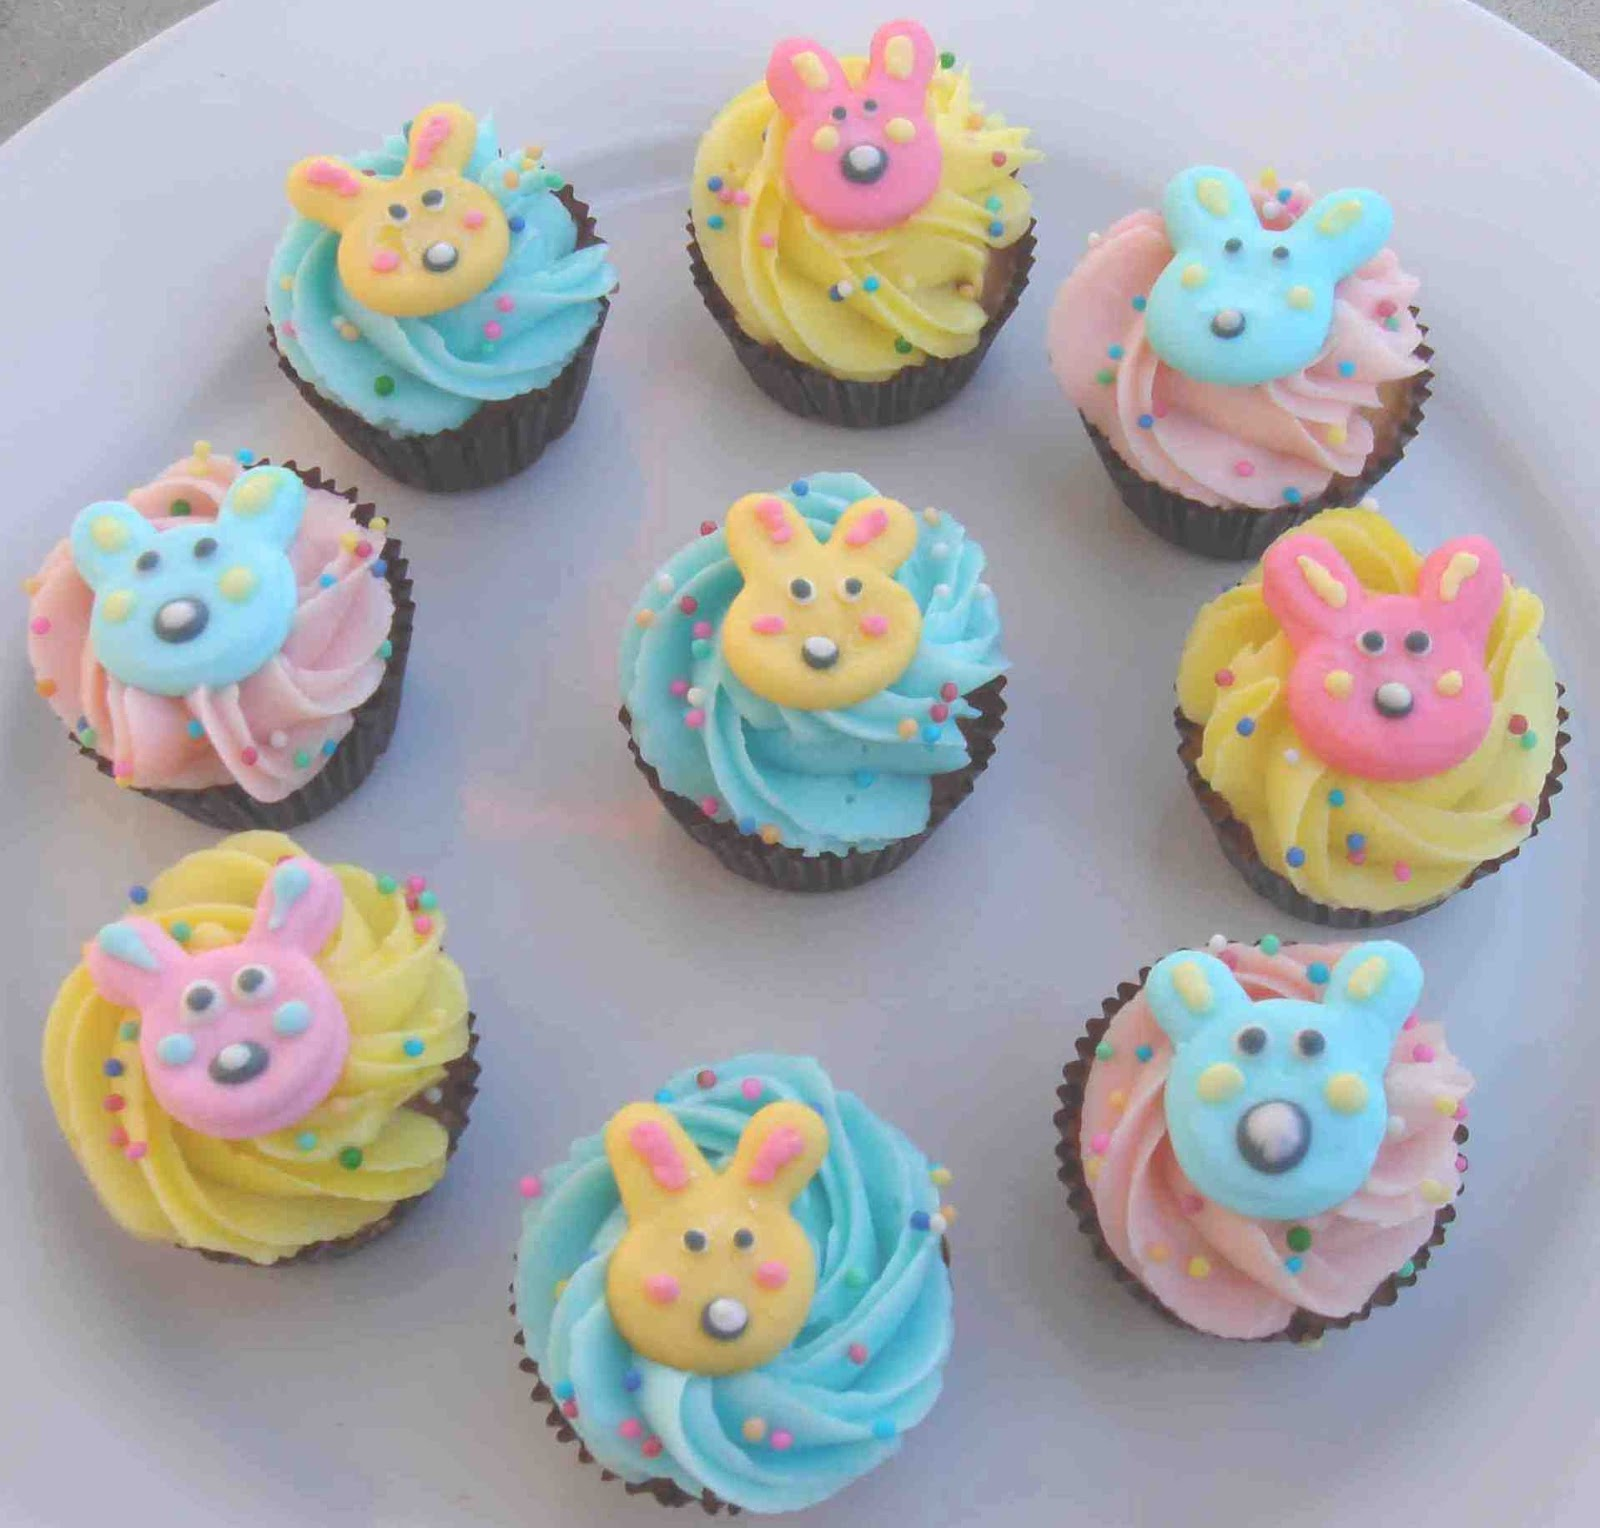 Easter Cake Decorating Ideas Pictures : Cupcake Decorating Ideas for Easter : Let s Celebrate!